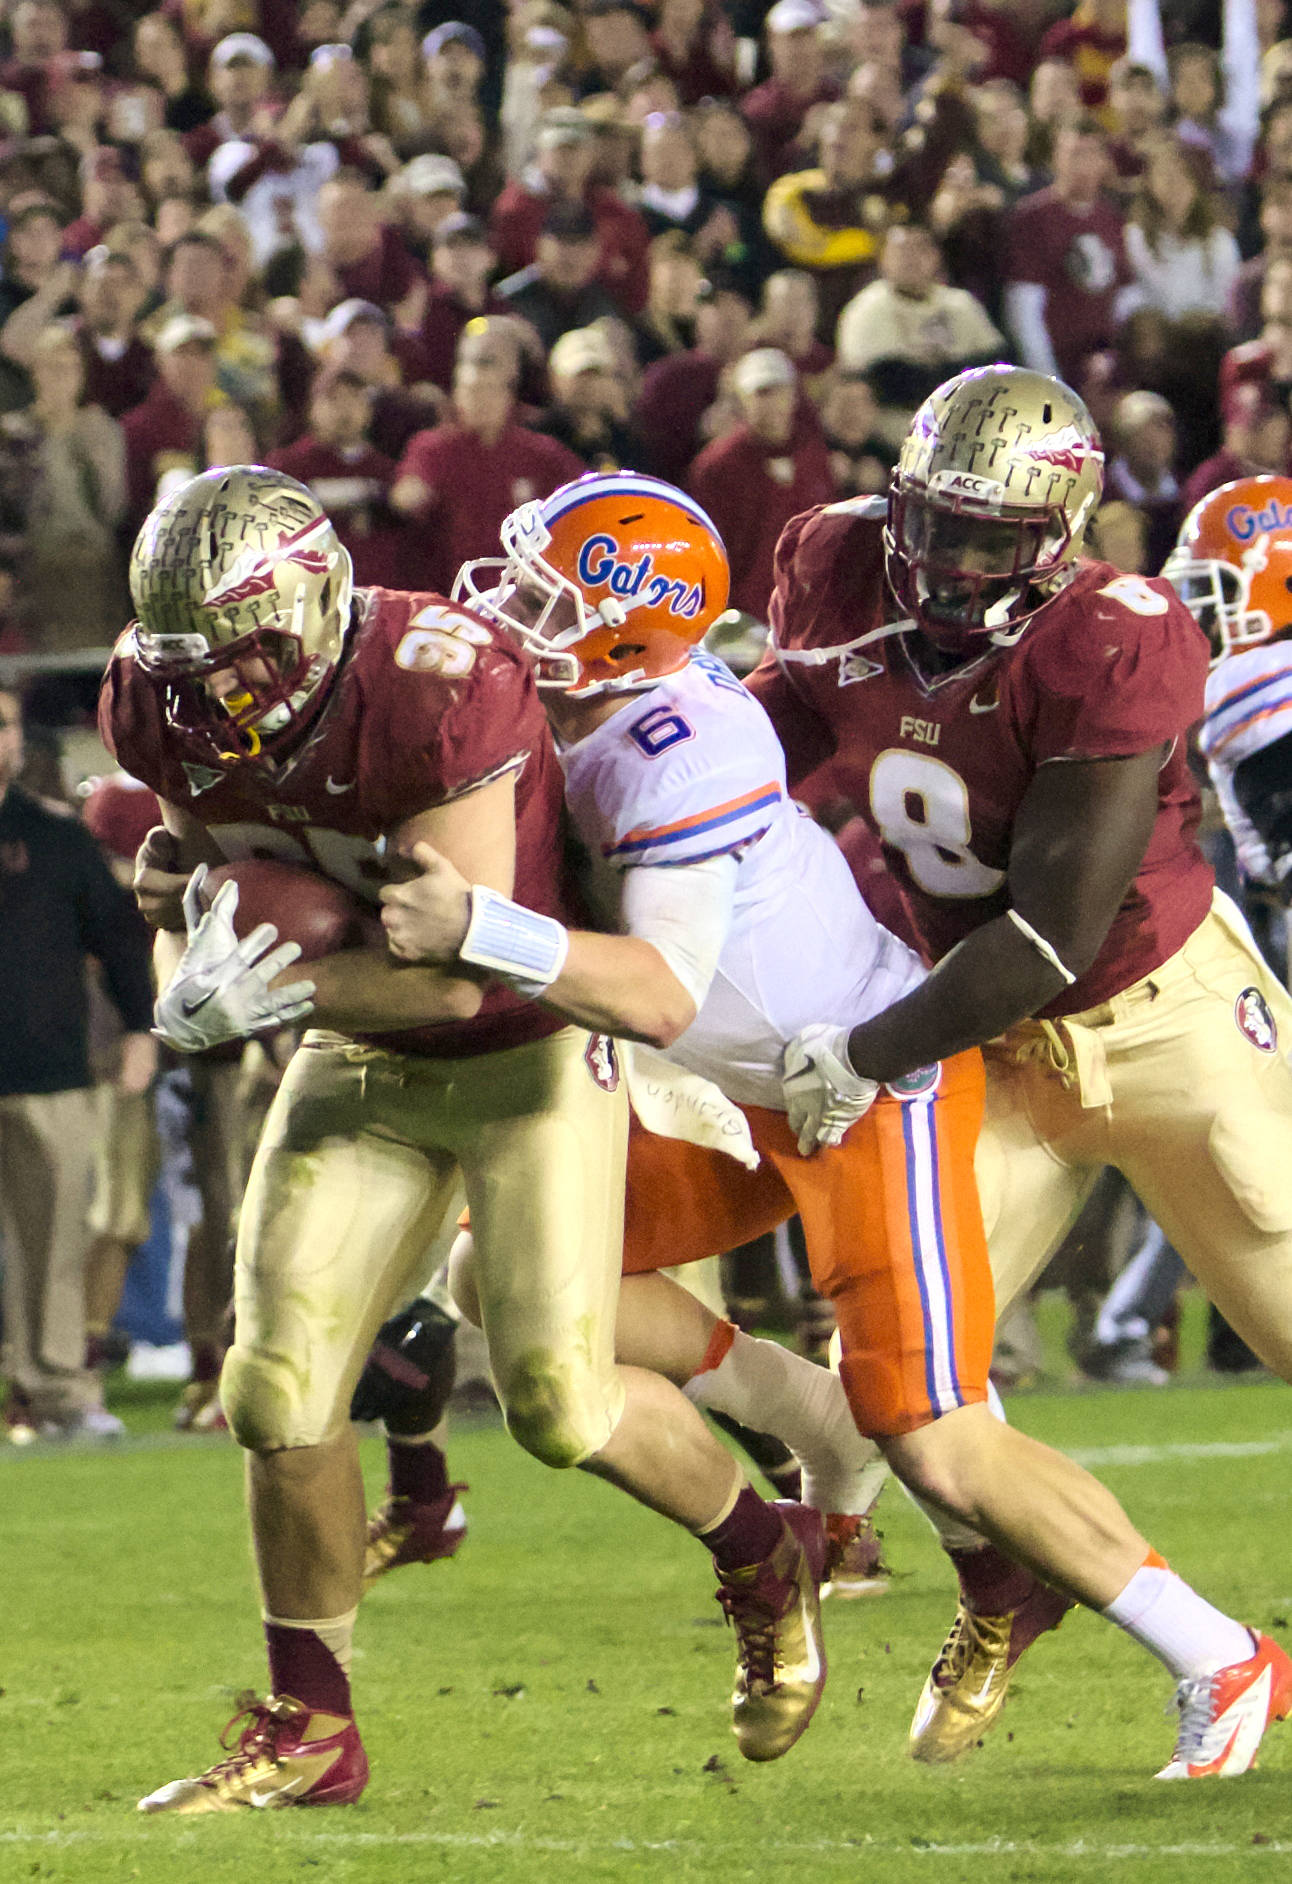 Bjoern Werner fumble recovery, FSU vs Florida, 11/24/12. (Photo by Steve Musco)